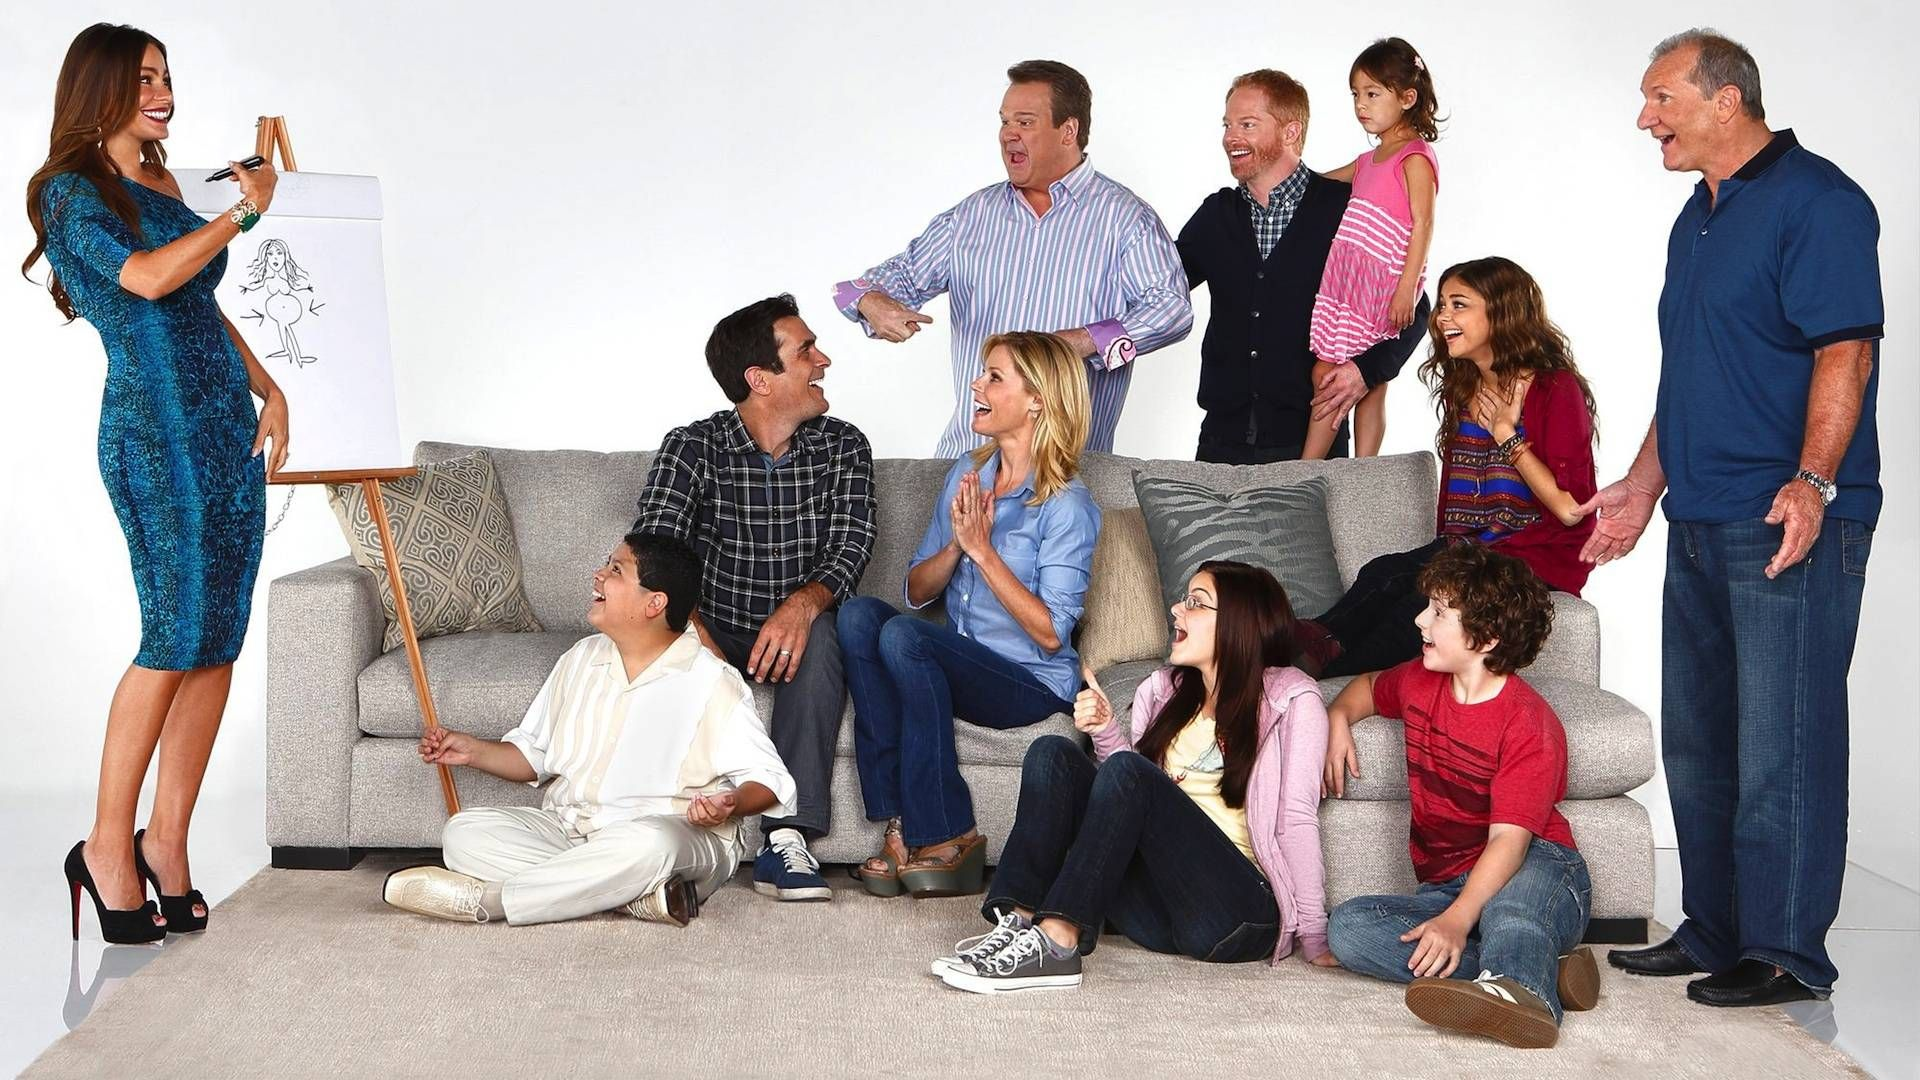 Pin By Brittany Smith On Haley Dunphy Modern Family Modern Family Season 4 Family Tv Series